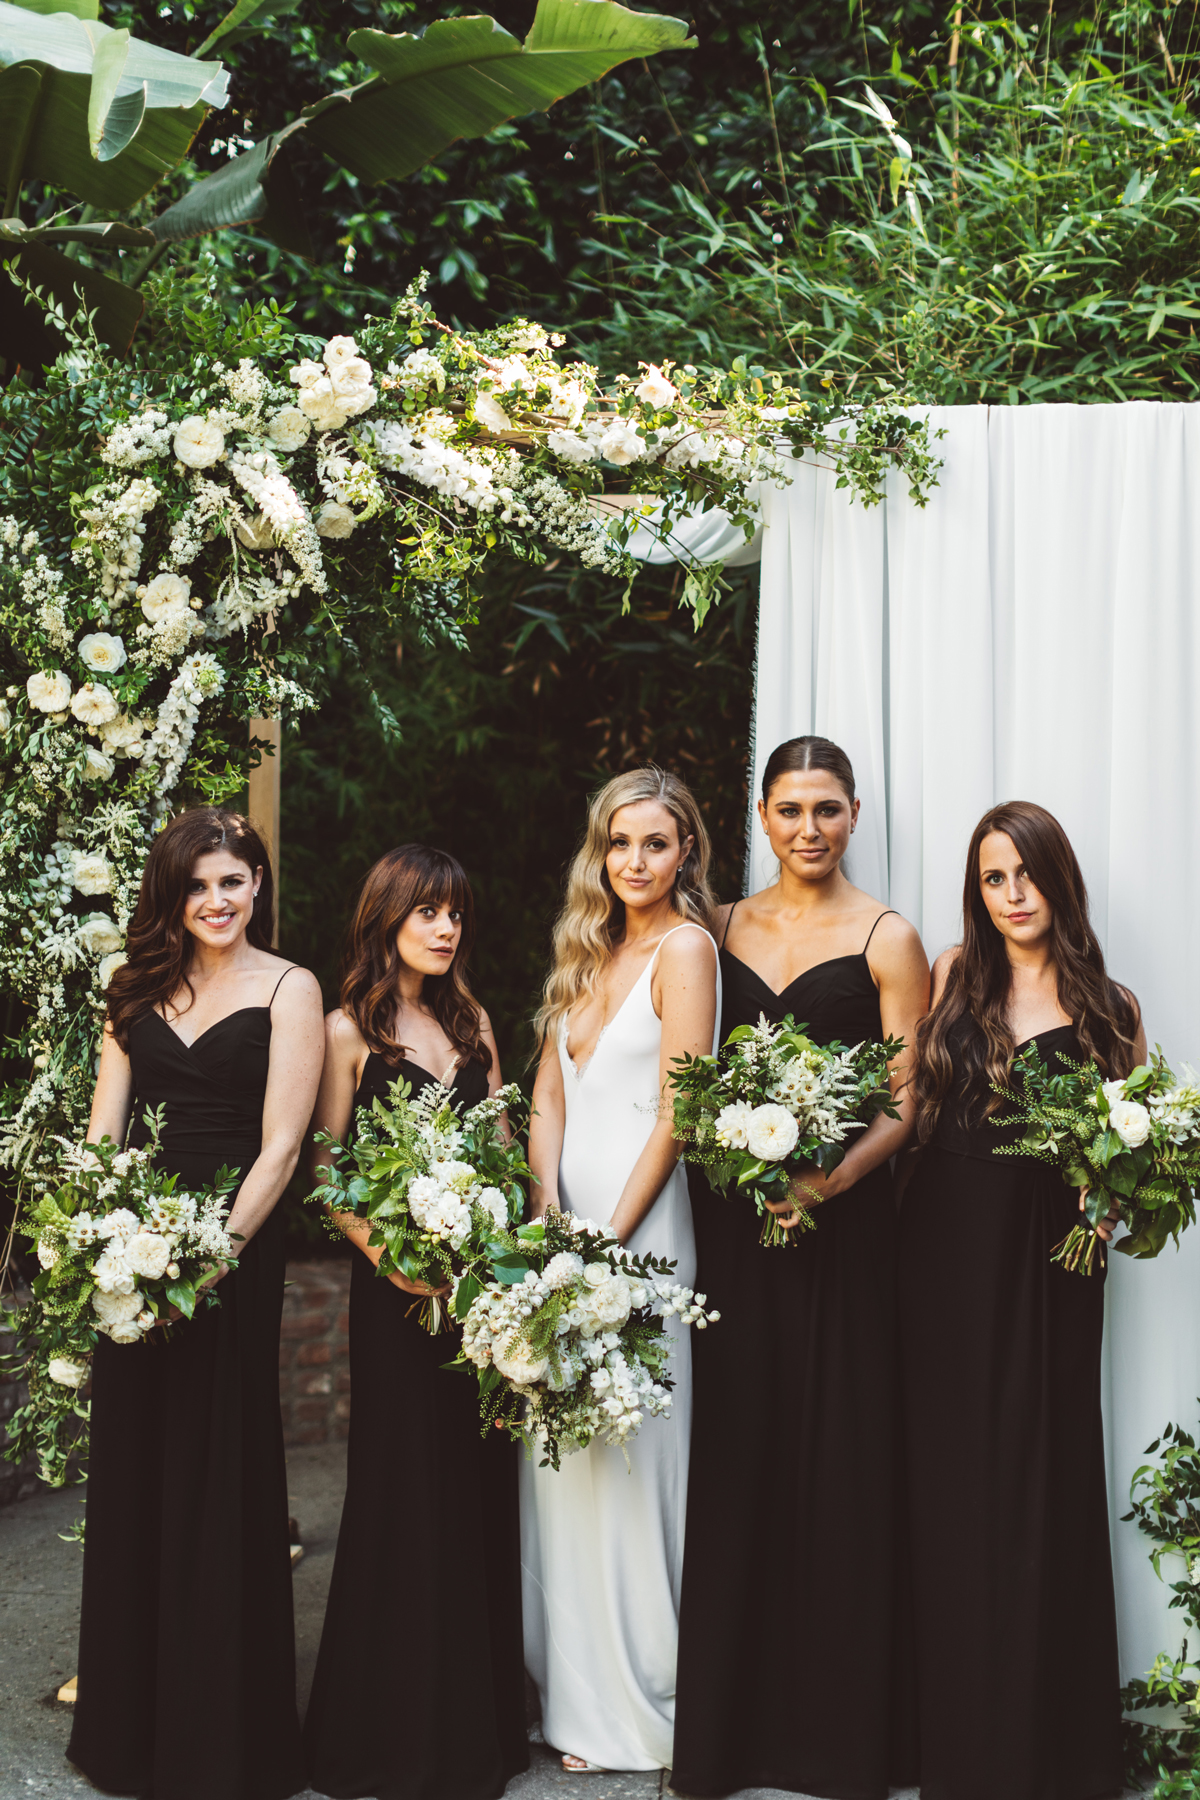 Can a Bridesmaid Change Her Dress During the Reception?